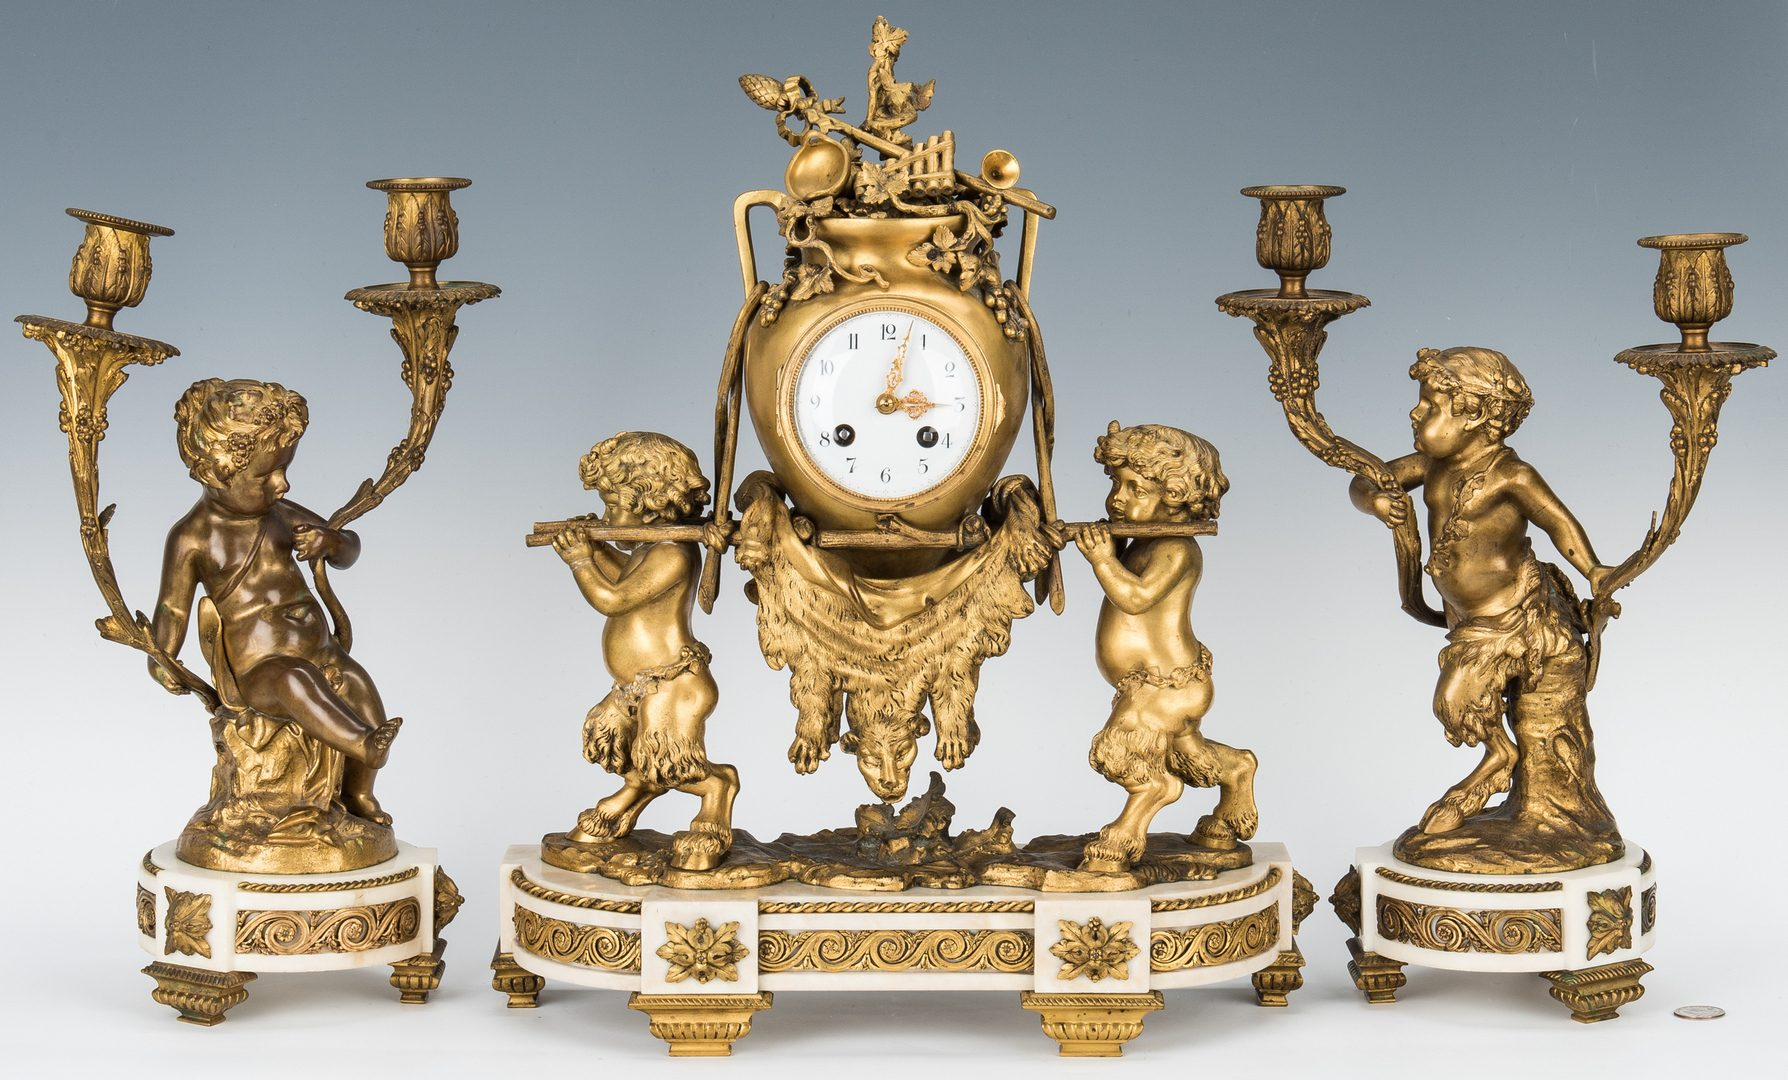 Lot 70: French Ormolu Clock and Garniture, Clodion